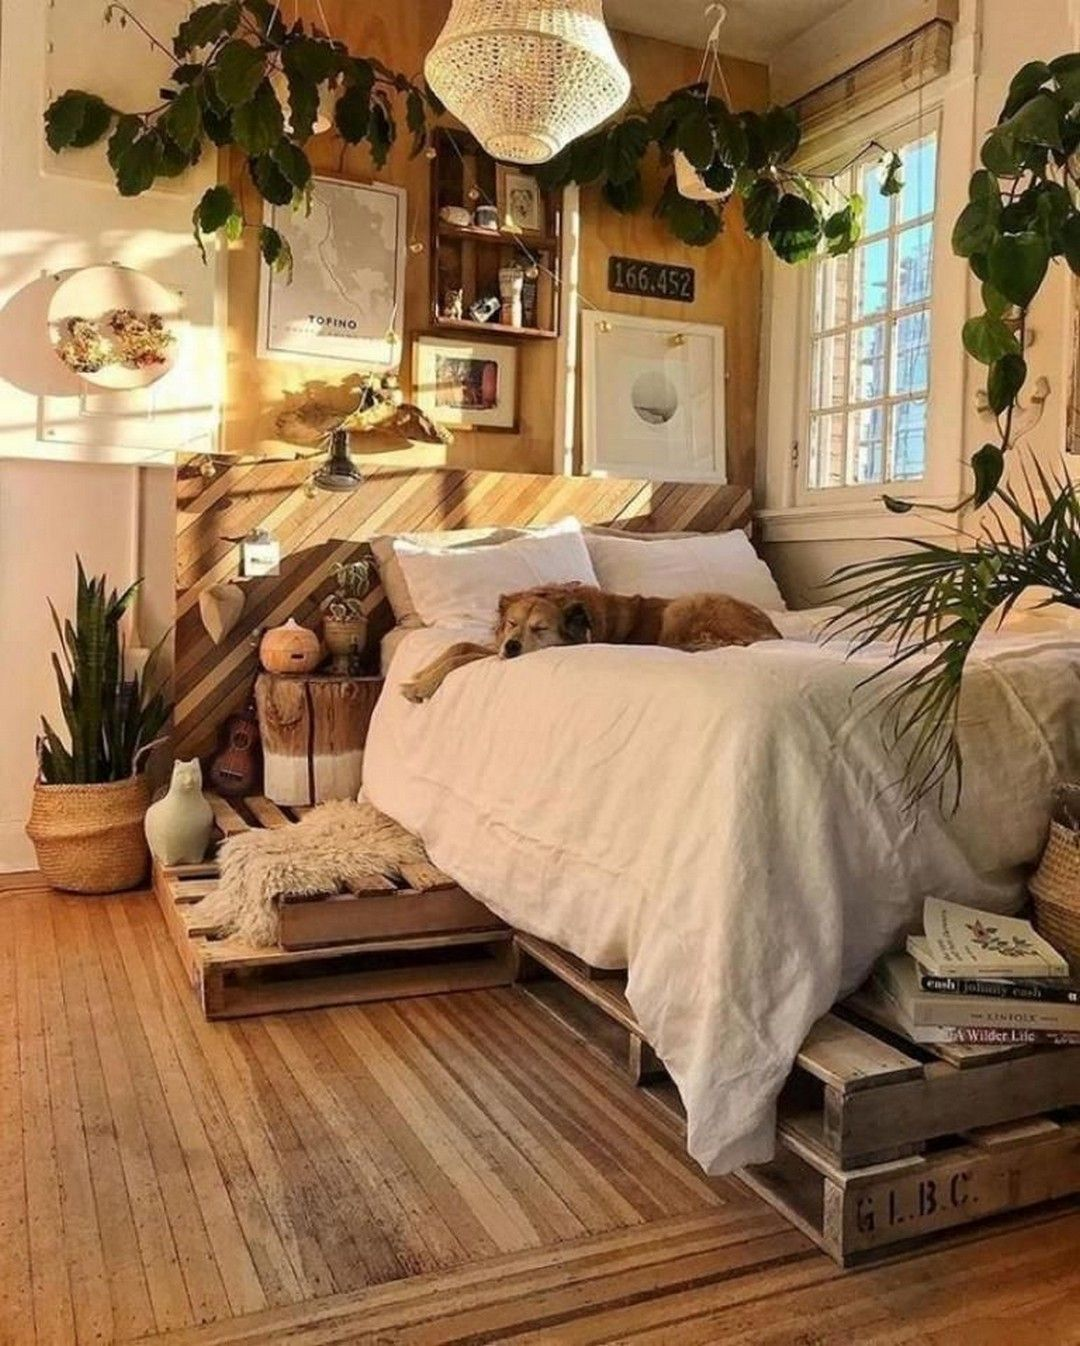 20 Fancy Cute Stuff For Your Bedroom Relaxing Bedroom Bohemian Bedroom Inspiration Indoor Plants Bedroom